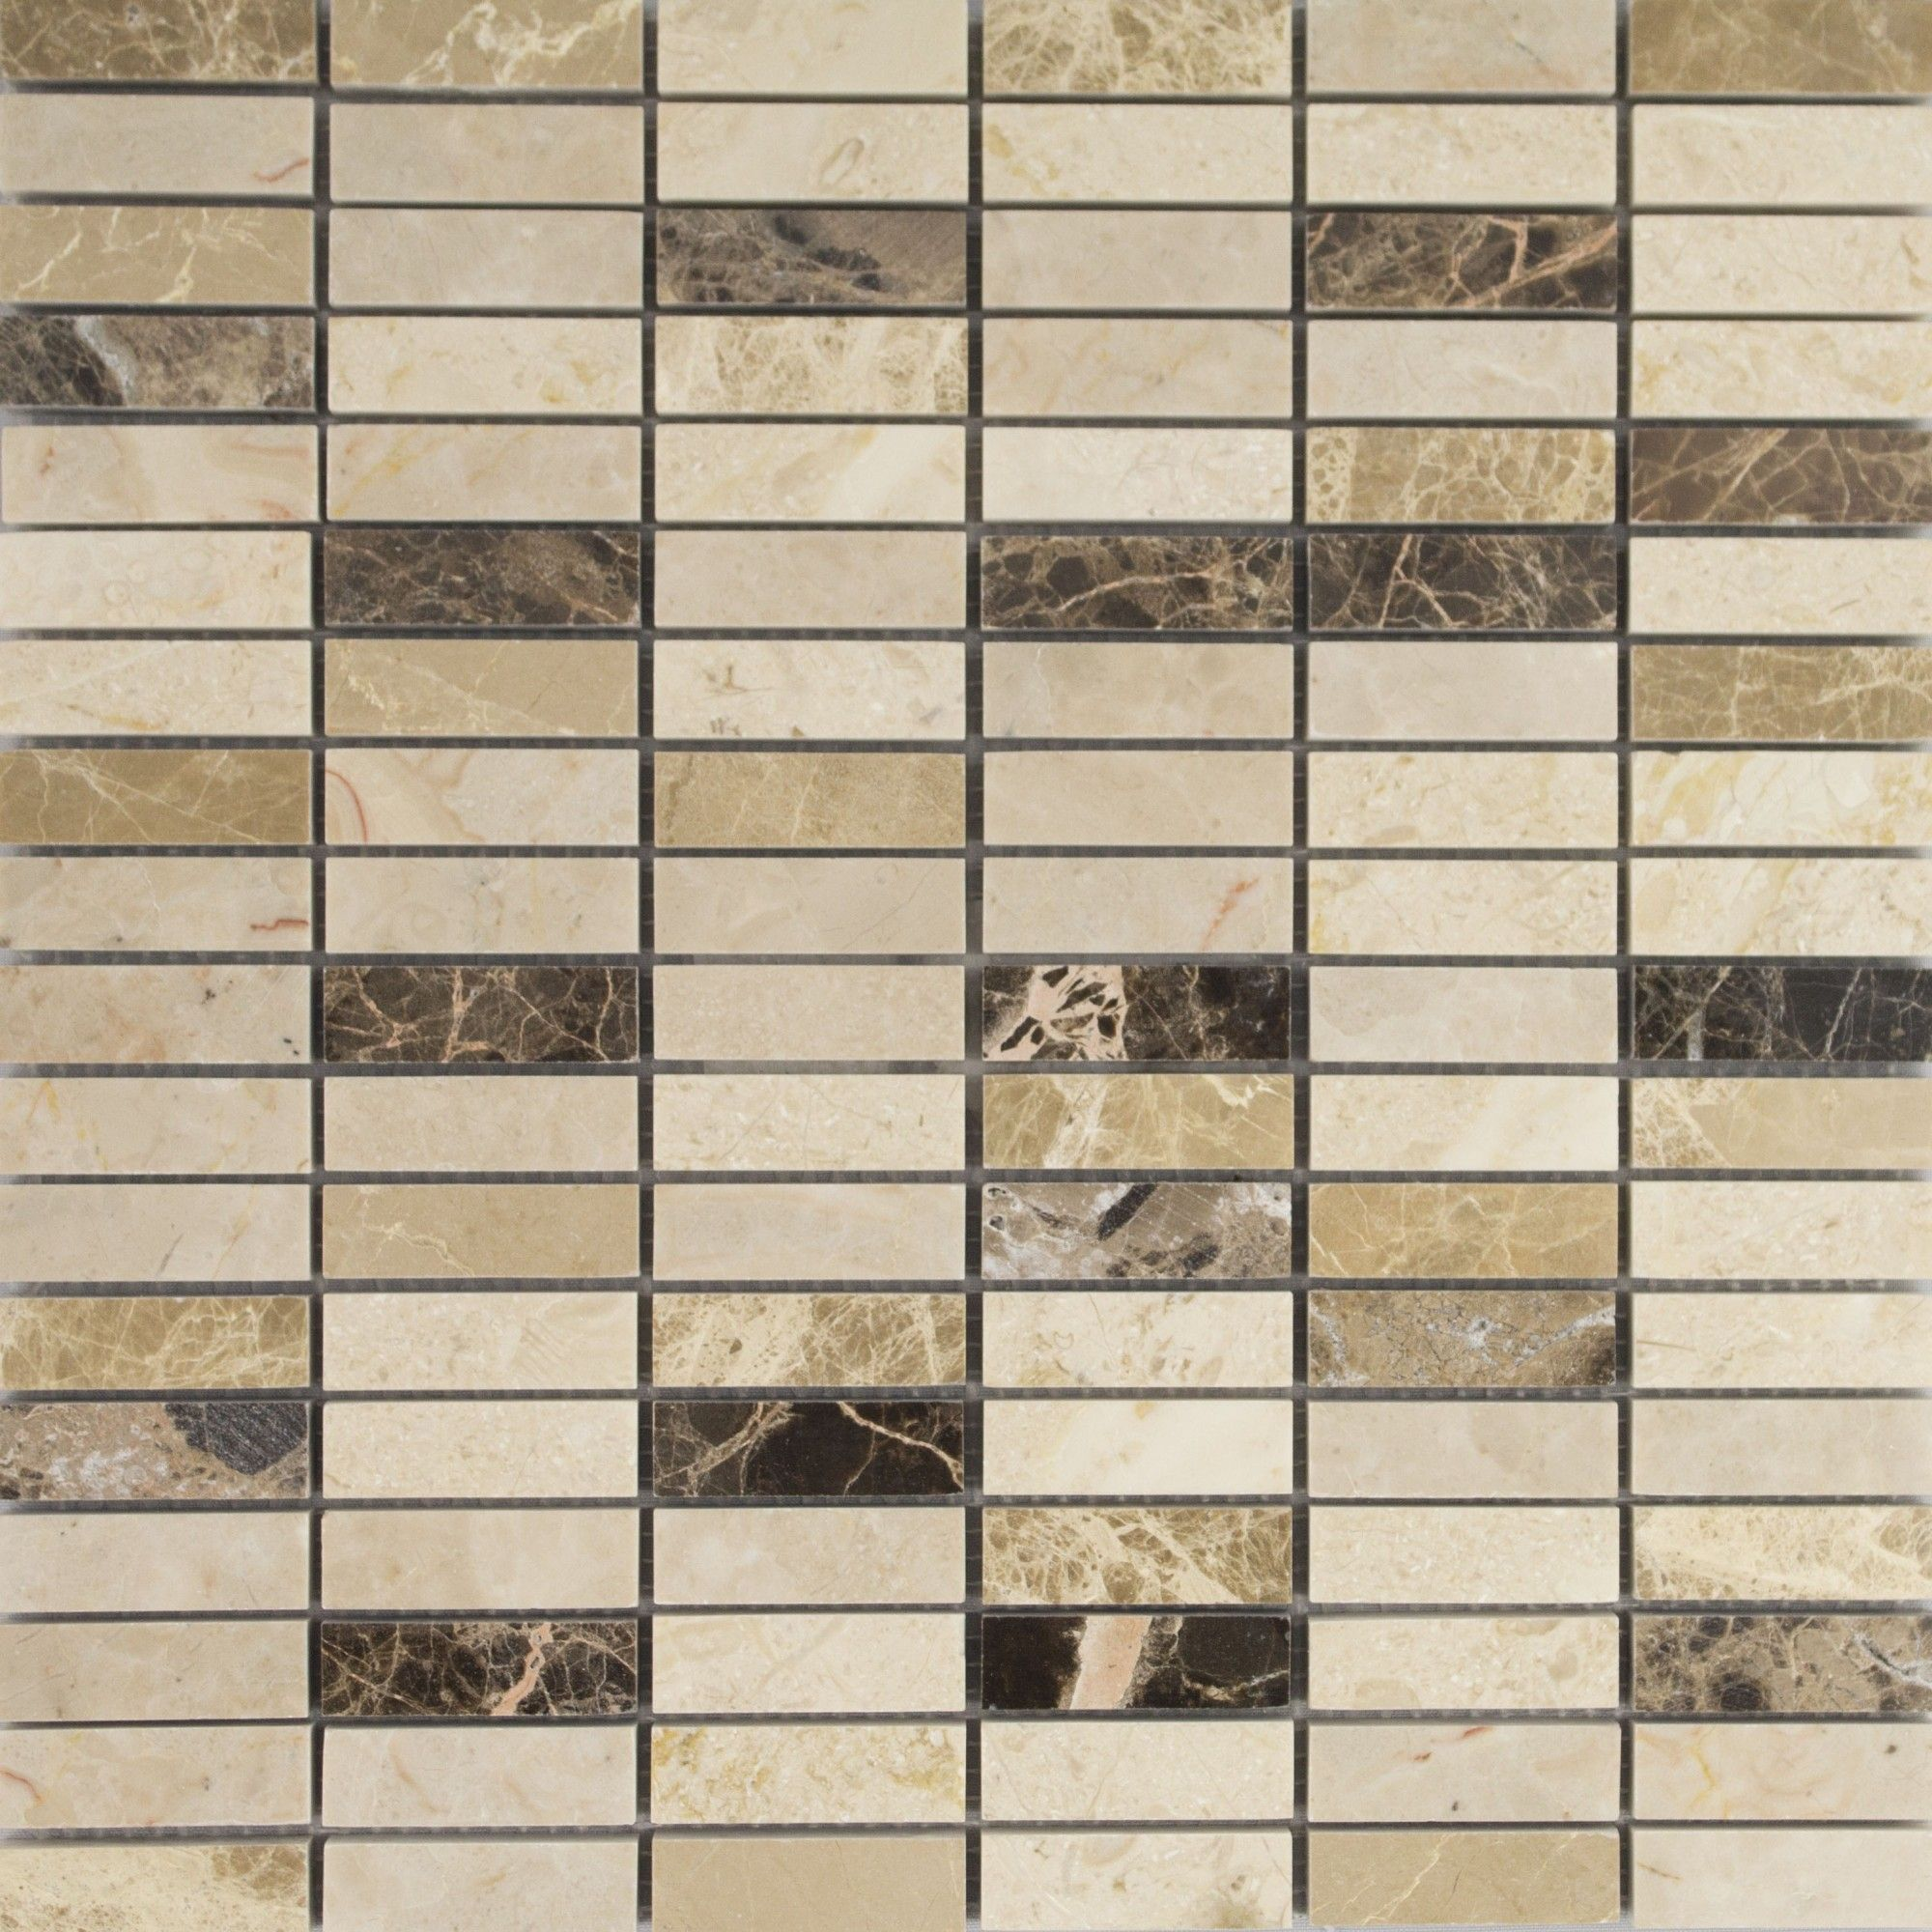 Expresso marble mosaic 48x15 marble wall floor tiles expresso marble mosaic from tile mountain only per tile or per sqm order a free cut sample dispatched today receive your tiles tomorrow dailygadgetfo Gallery